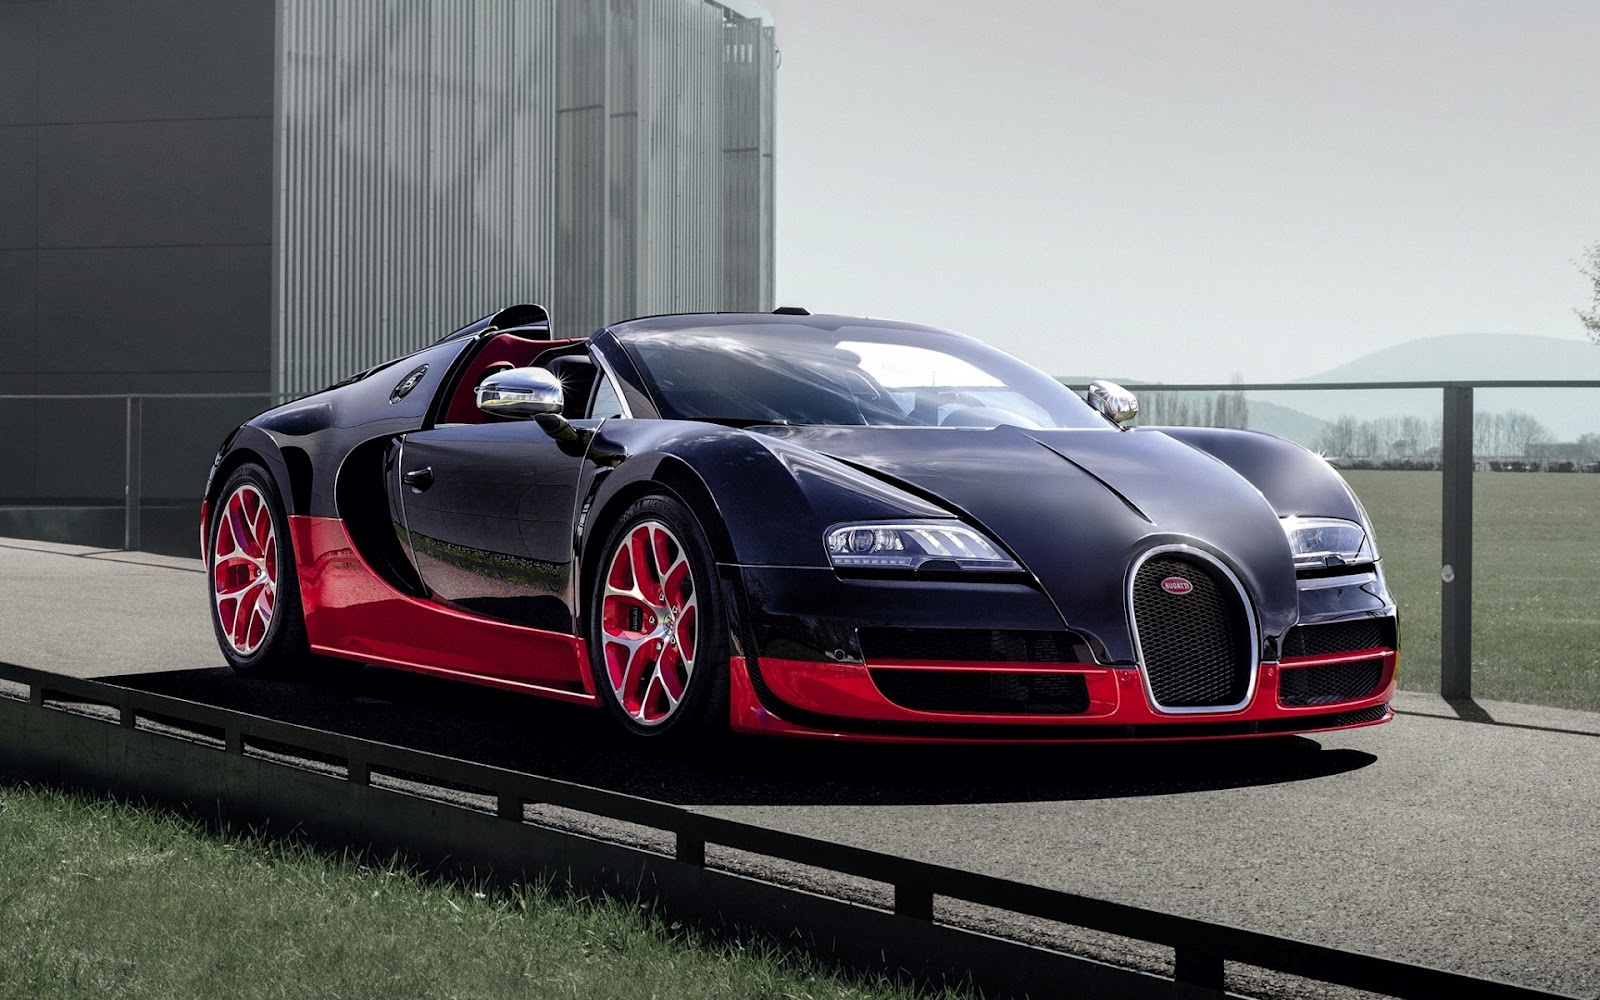 Latest Bugatti Veyron Hd Backgrounds 3039 Wallpaper Wallpaper hd 1600x1000